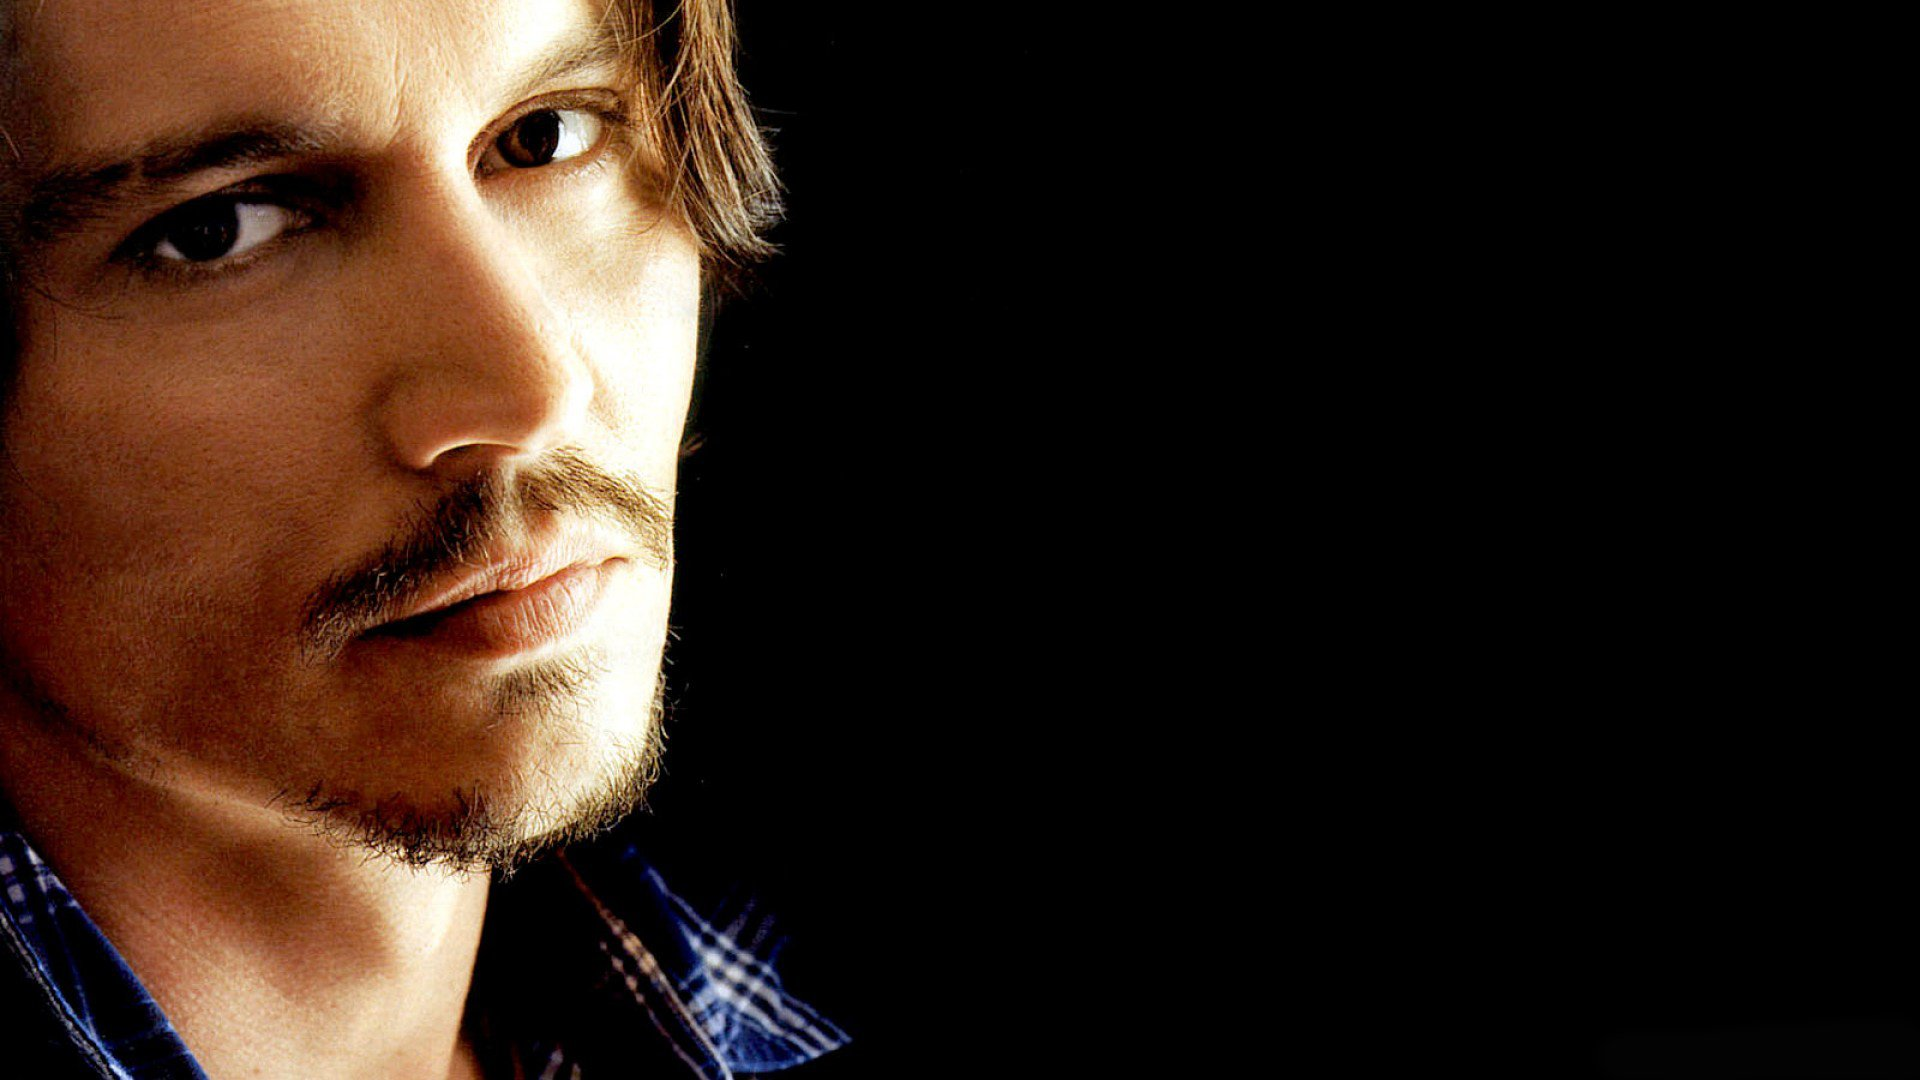 Johnny Depp Fondo De Pantalla HD